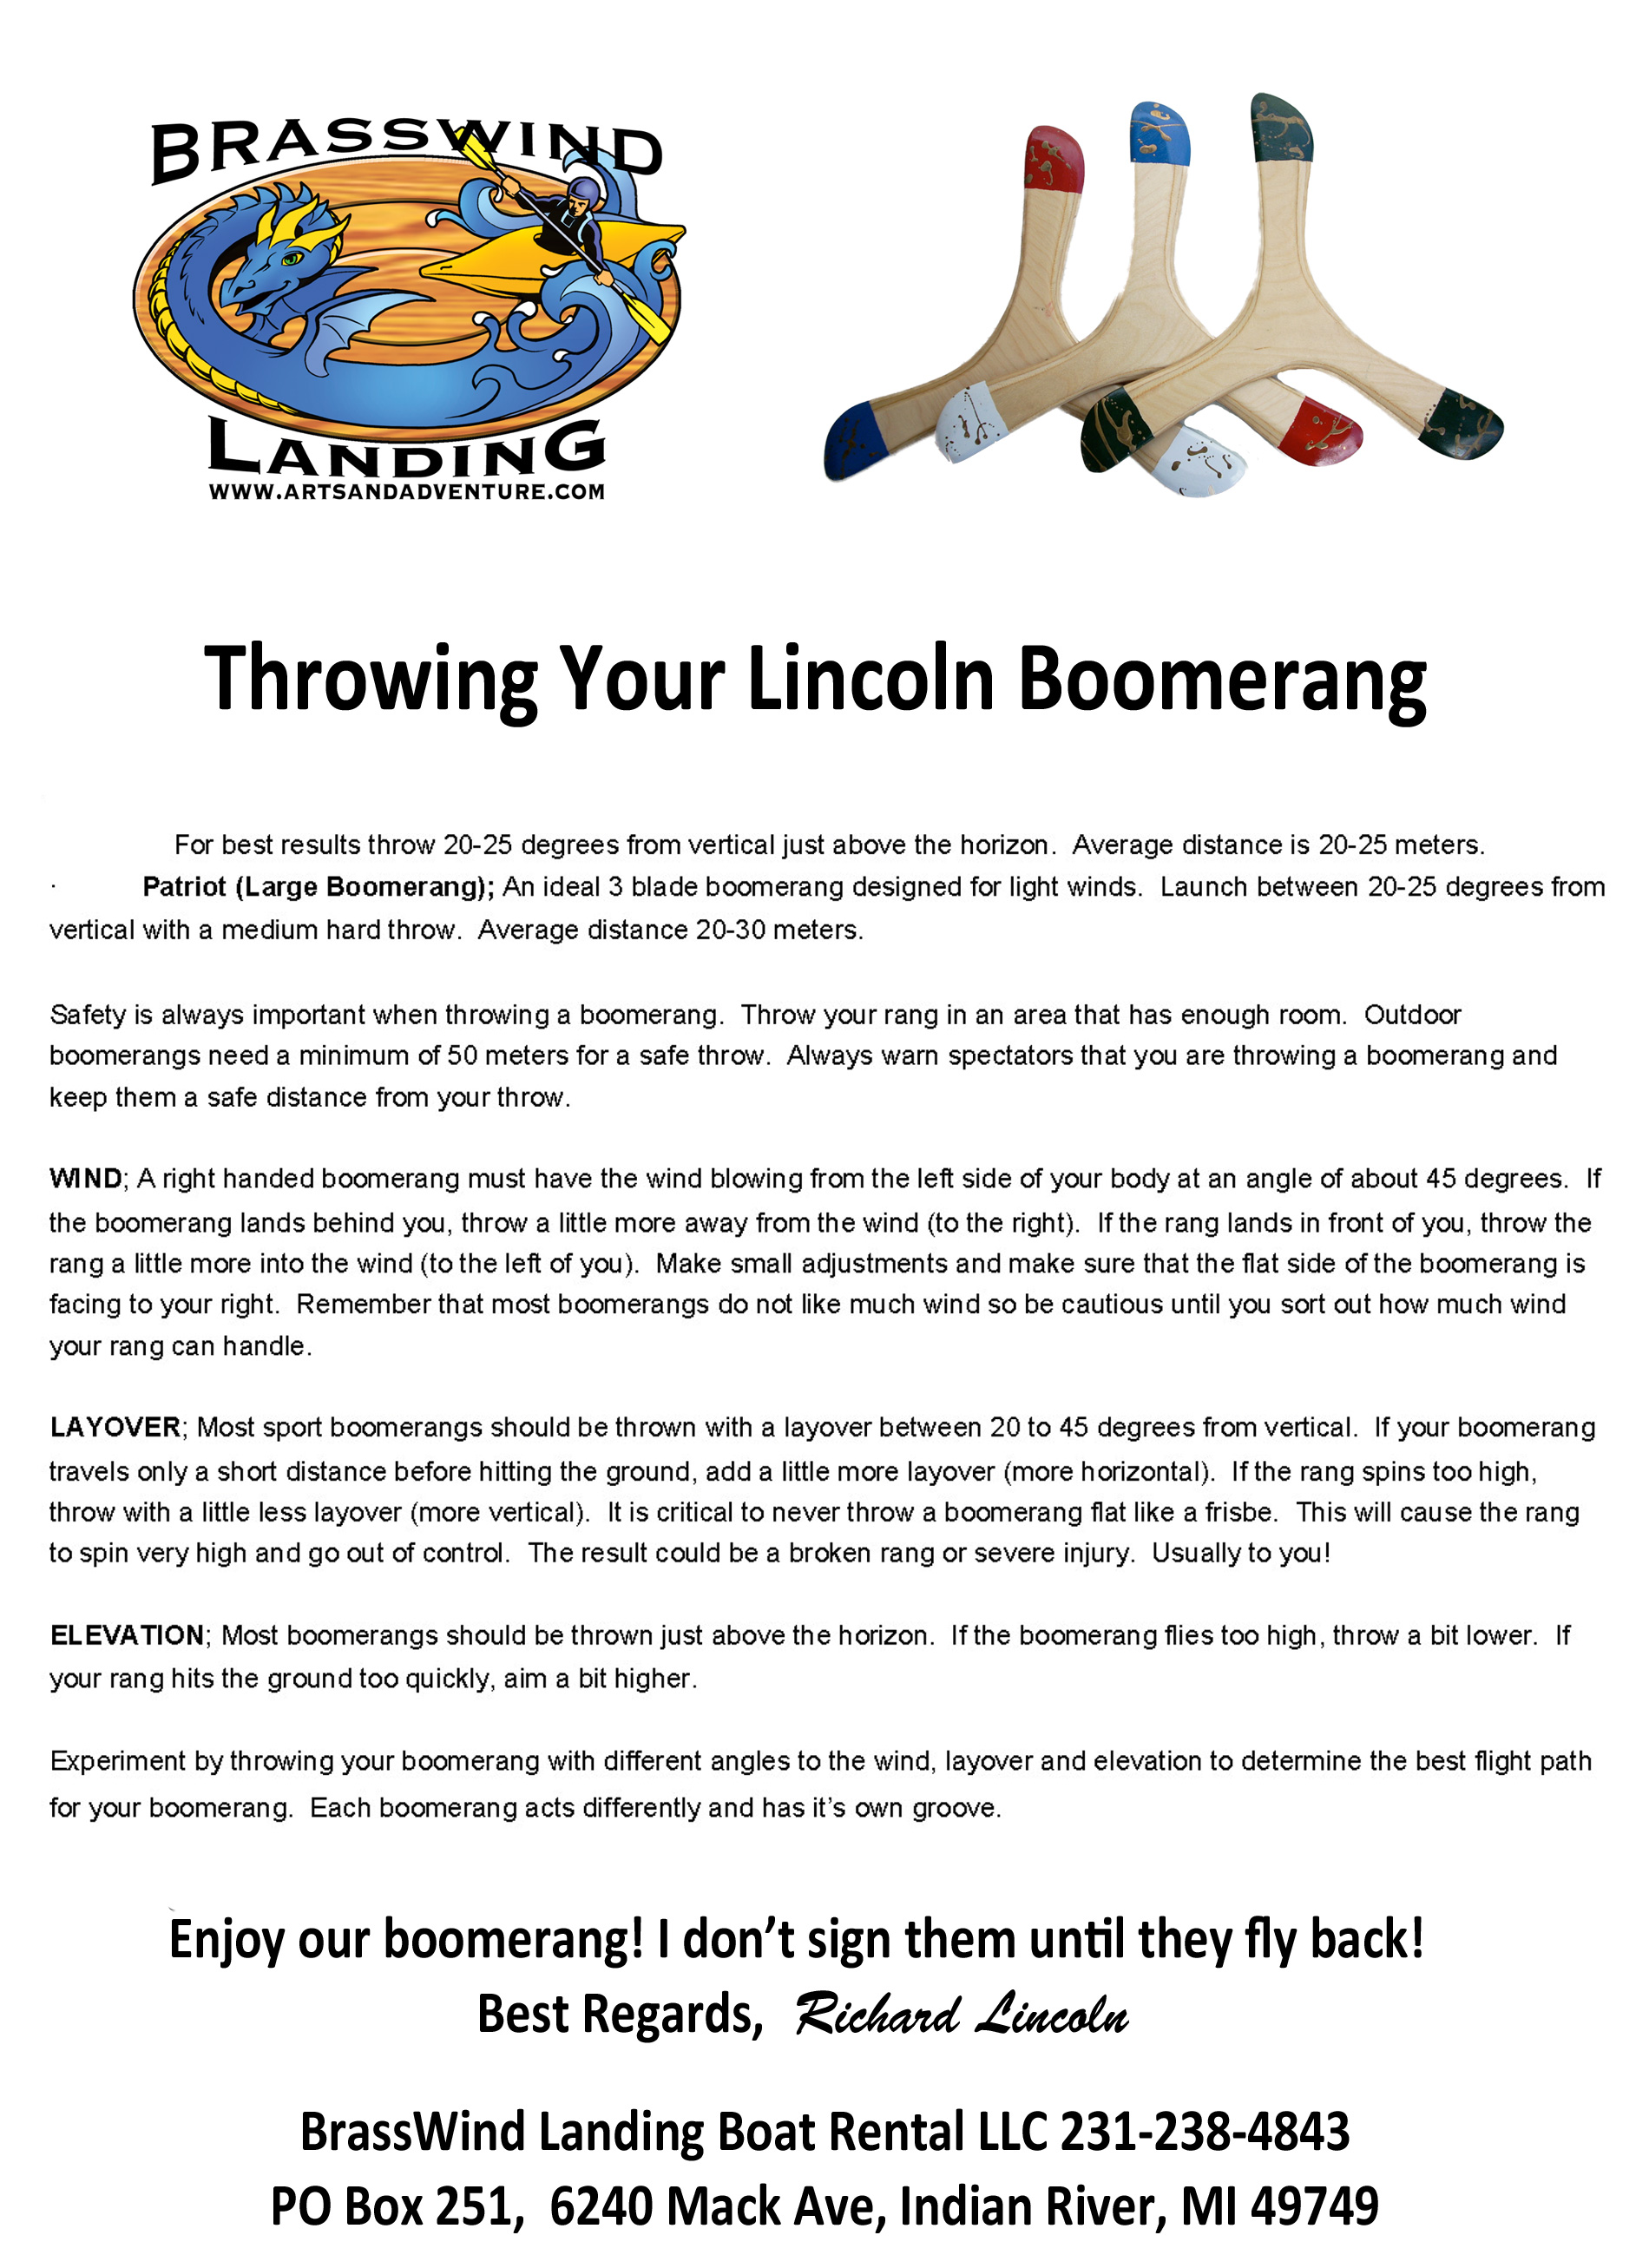 throwing your boomerang flyer - image